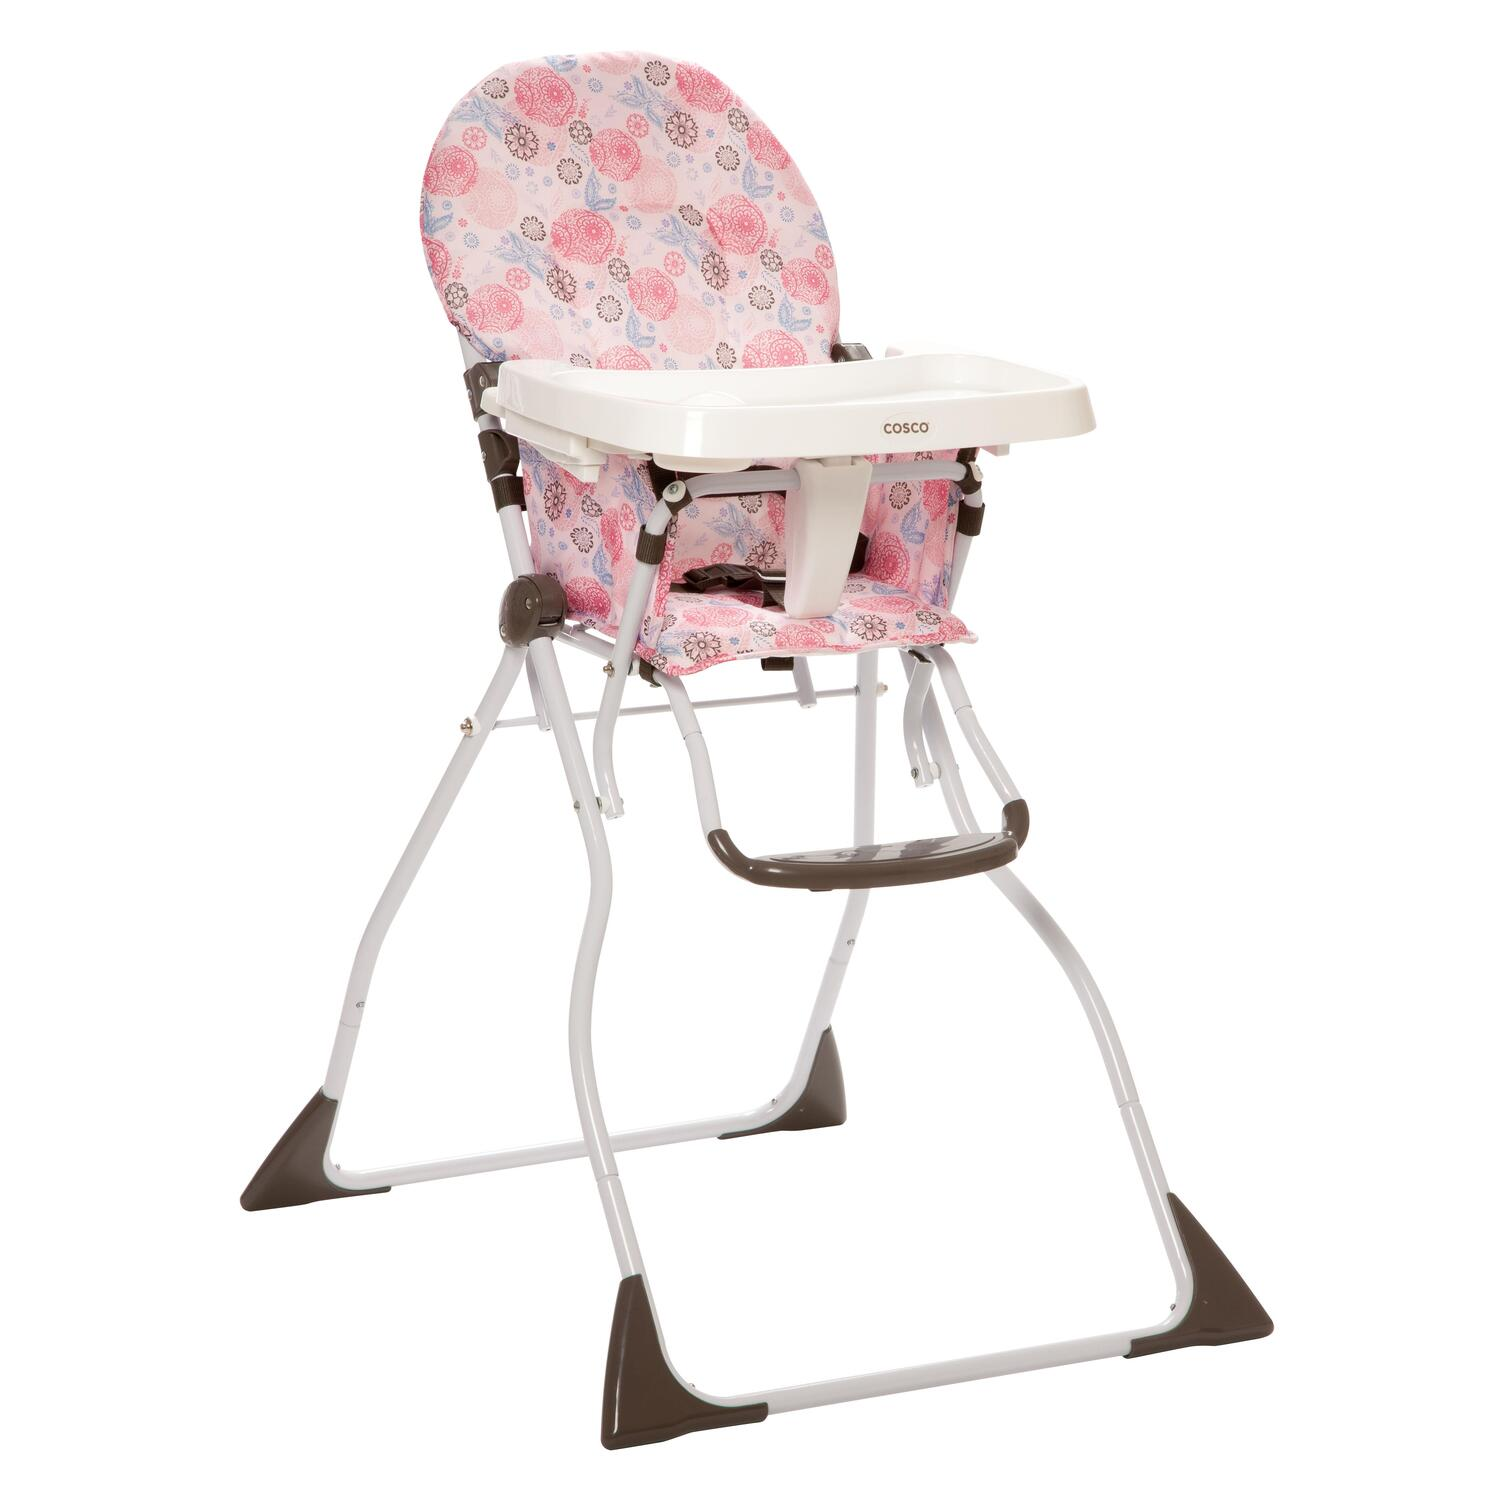 Evenflo Compact Fold High Chair Cosco Slim Fold High Chair From 48 99 To 50 99